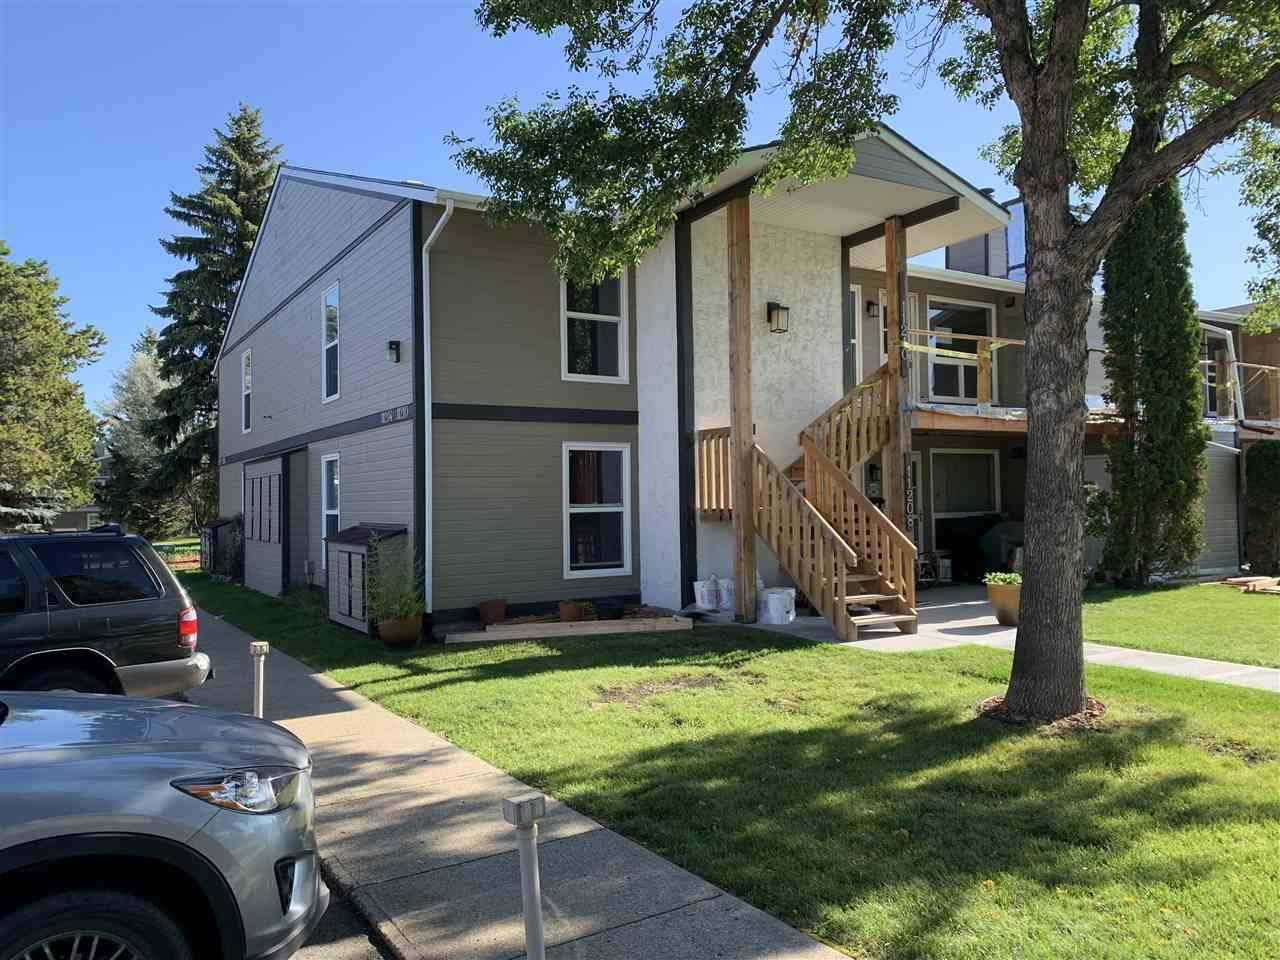 Townhouse for sale at 11210 18 Ave Nw Edmonton Alberta - MLS: E4174432